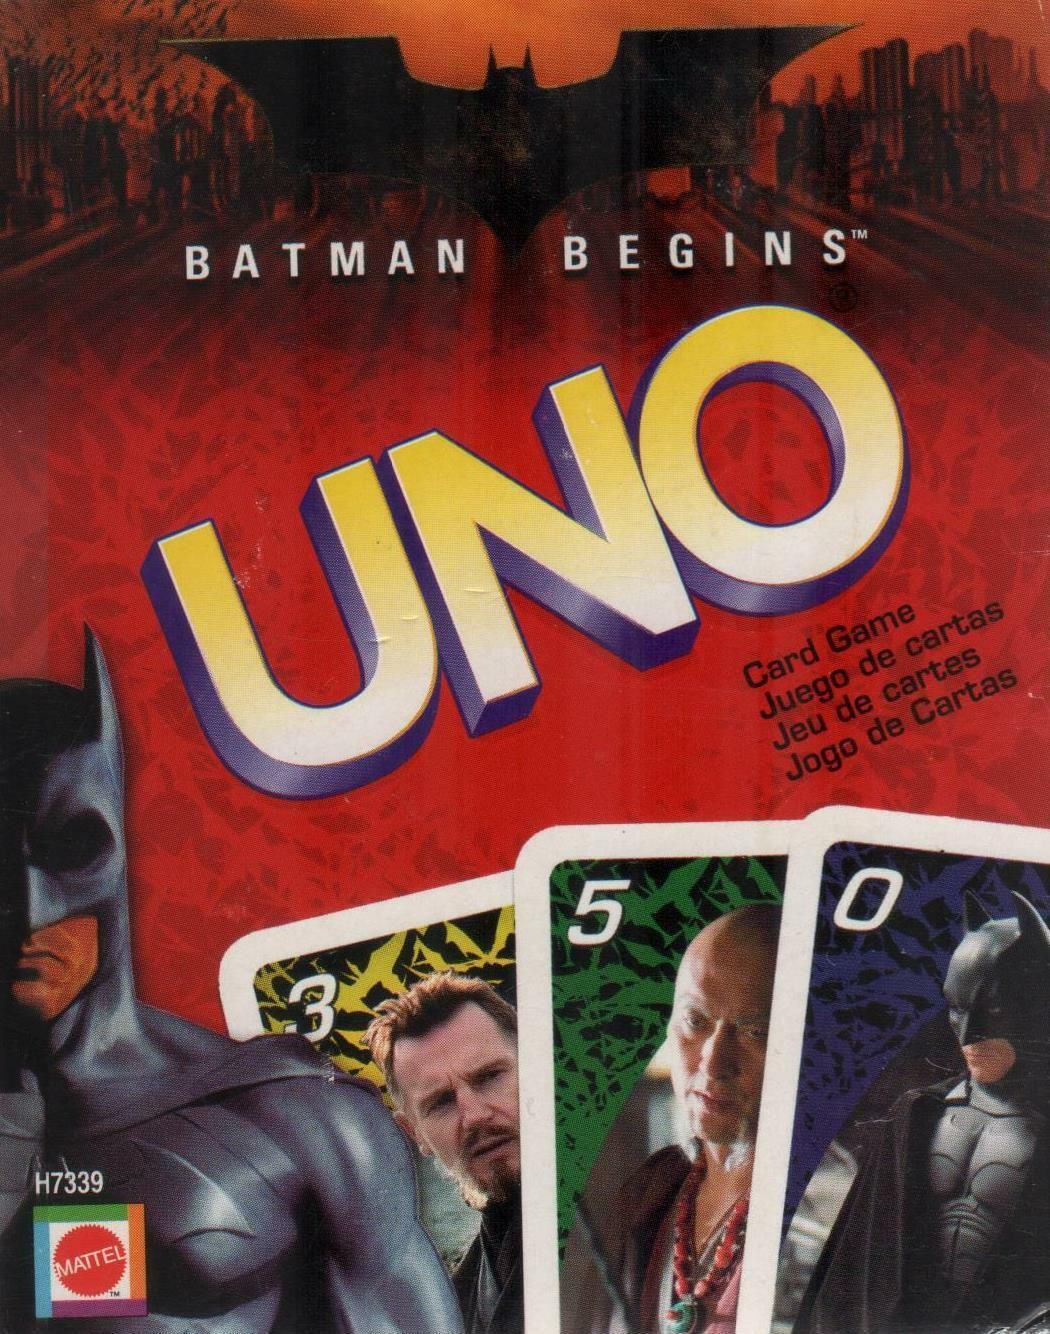 Batman begins uno card game complete but instructions